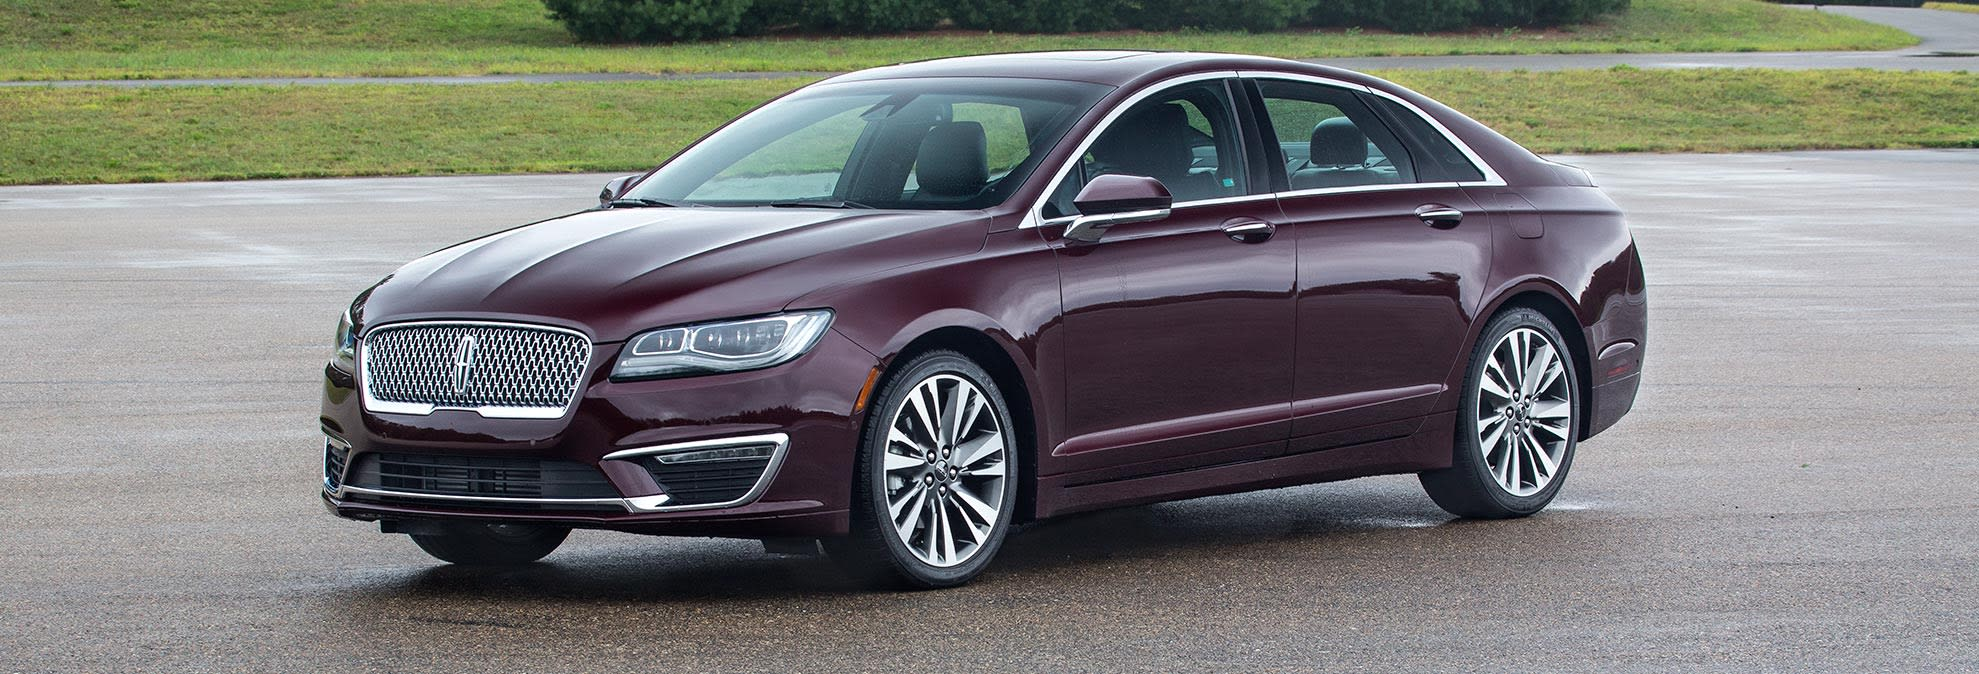 2017 Lincoln Mkz Moves Upscale